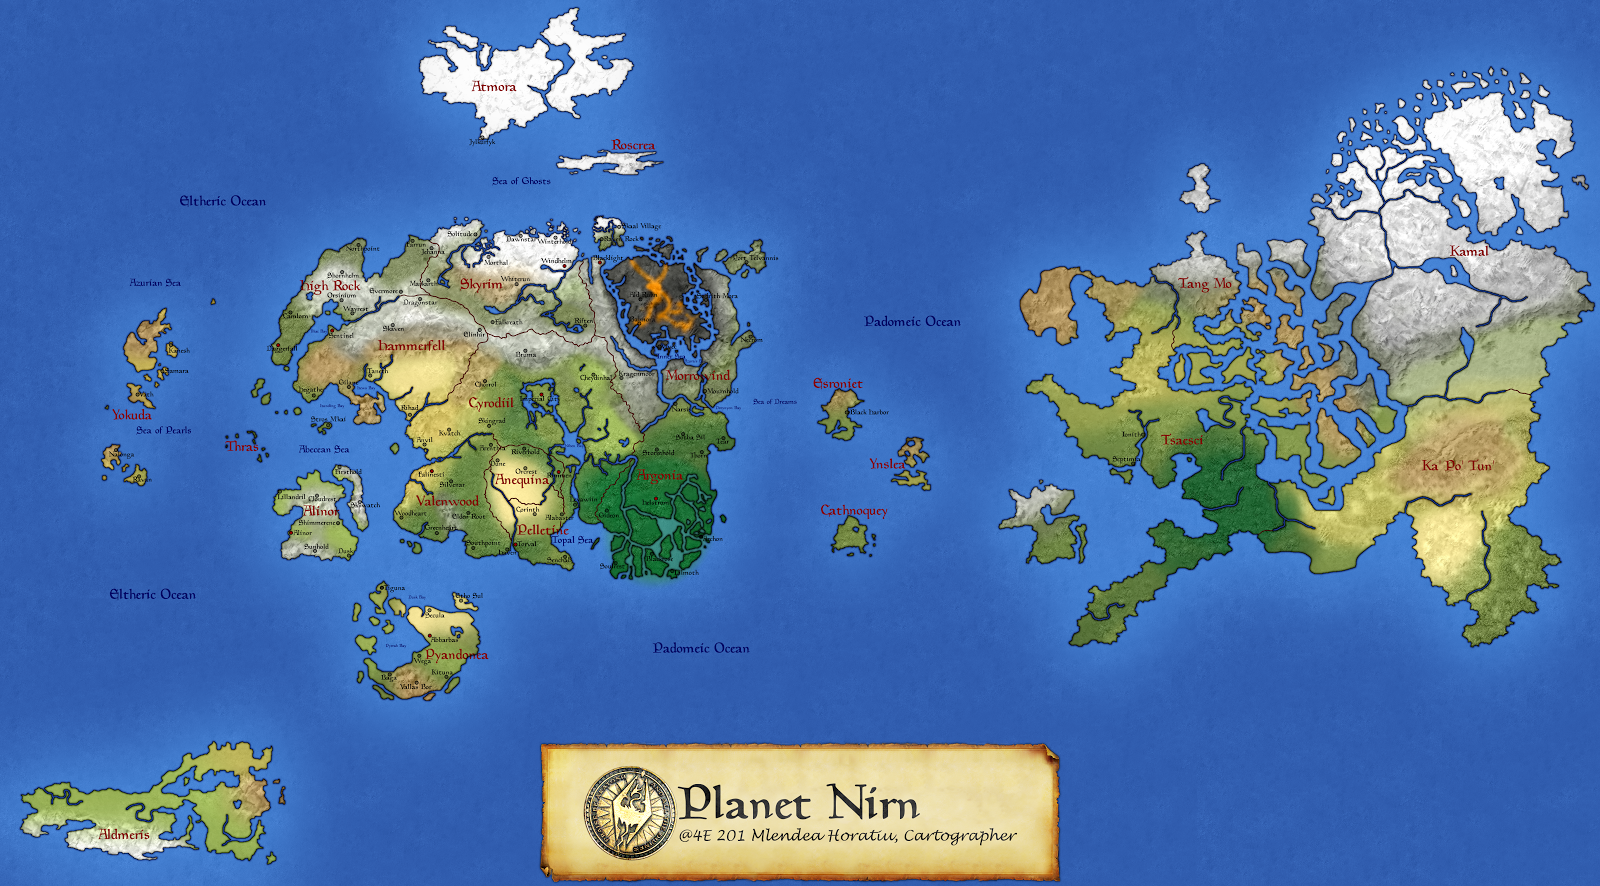 planet_nirn___geographical__v2__by_hori873-d6h7sh0.png